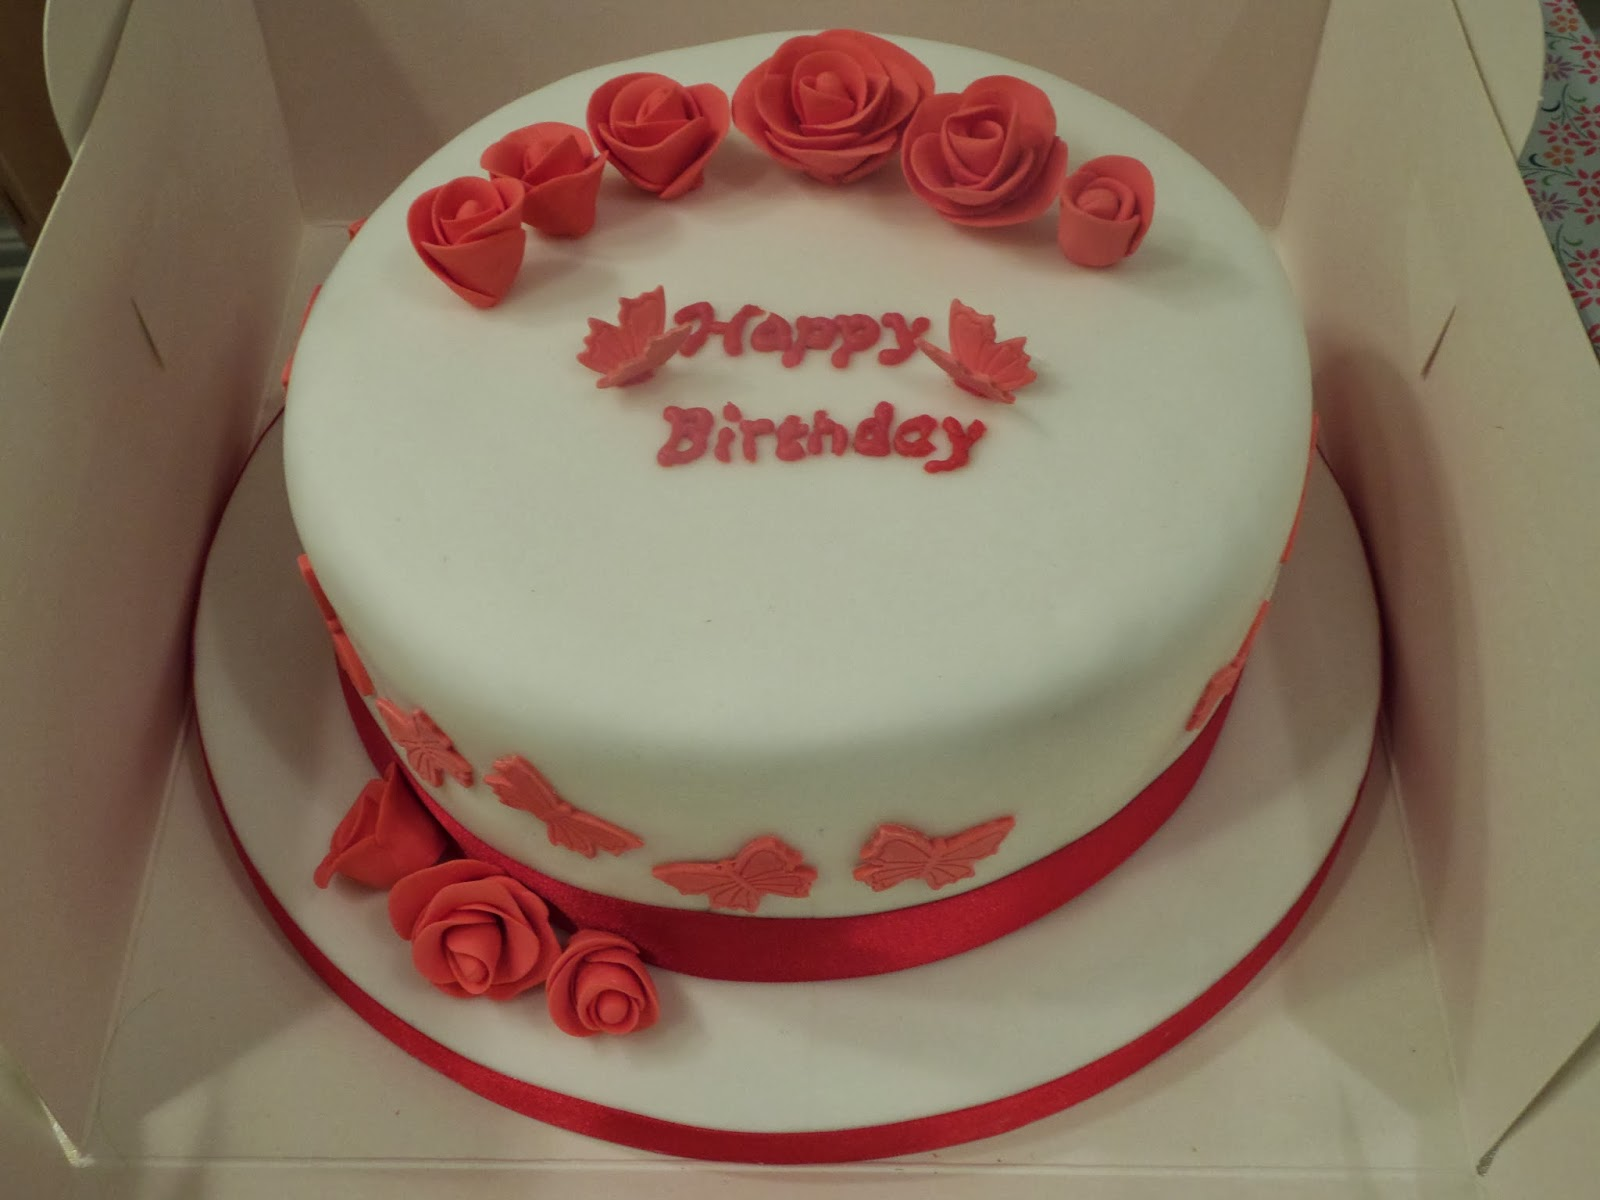 My Most Recent Cake Creations 88th Birthday Cupcakes And A Red And